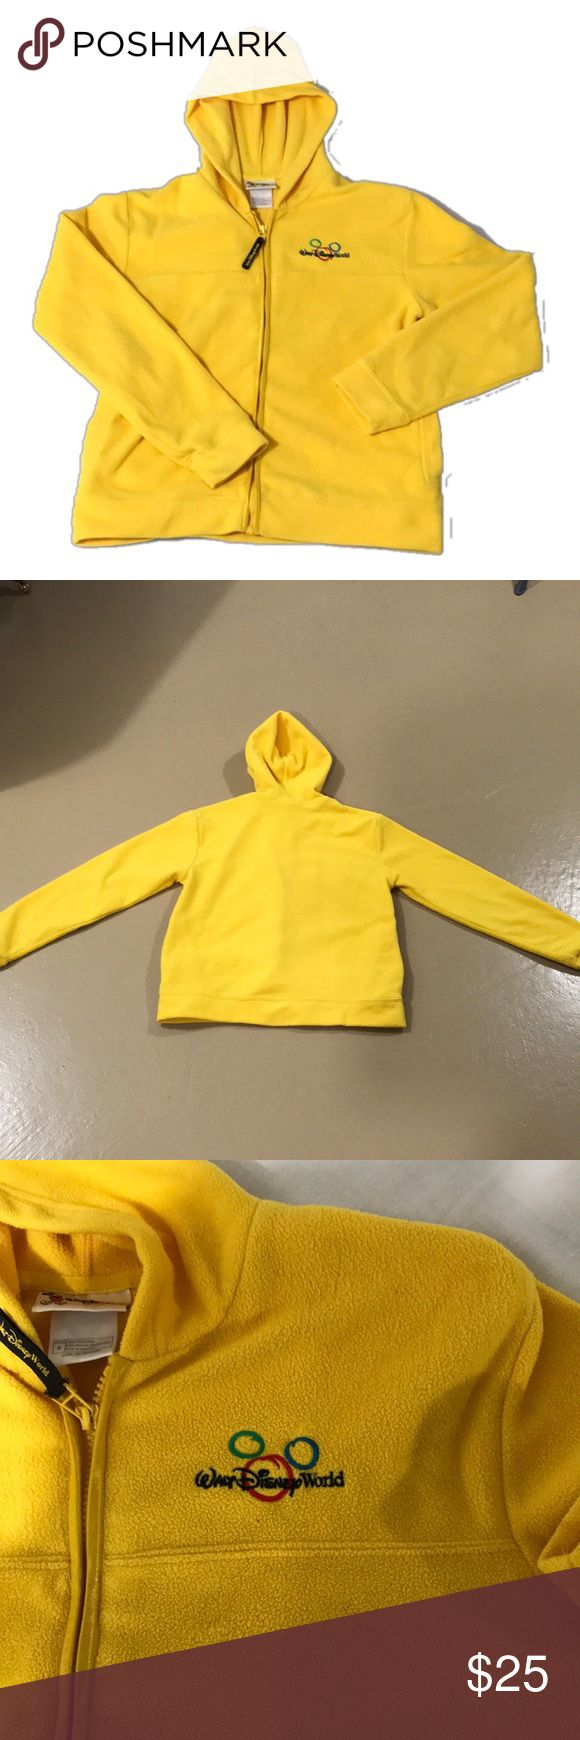 Disney World Zip-Up Yellow Fleece Jacket, size S Walt Disney World Yellow Zip-up Fleece Jacket in excellent preloved condition. This jacket was purchased in the park and is not dated. It's perfect for your upcoming WDW trip! More measurements available upon request and are approximate. Bundle for more savings and I'm open to offers! Disney Tops Sweatshirts & Hoodies